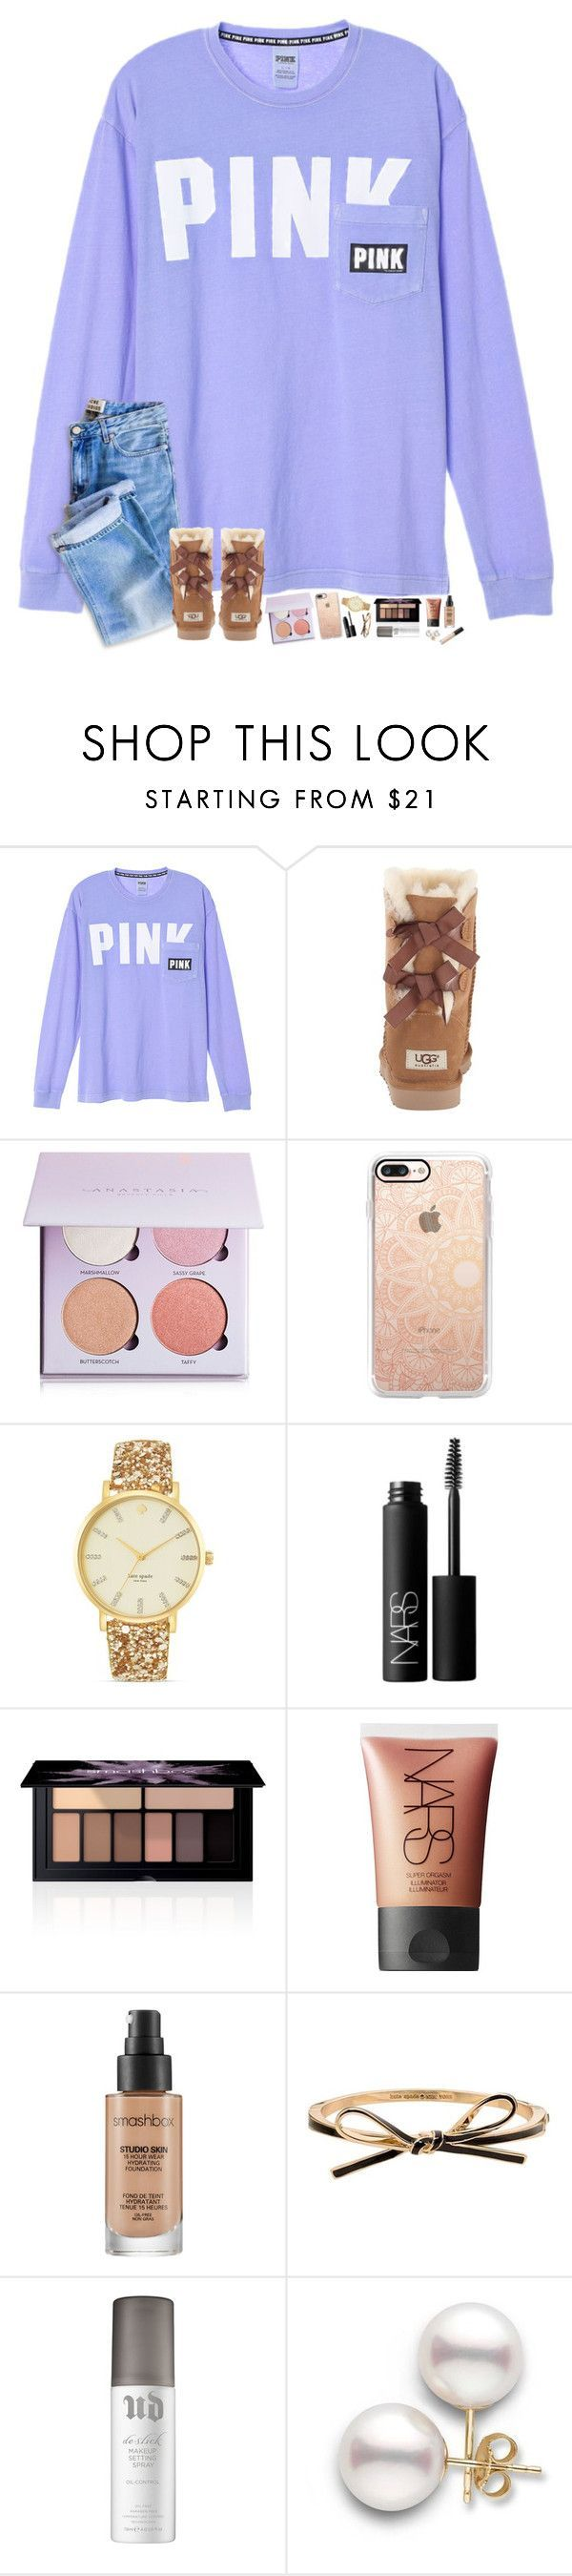 going to try some new stuff on here.. updates in d by hopemarlee ❤ liked on Polyvore featuring UGG Australia, Anastasia Beverly Hills, Casetify, Kate Spade, NARS Cosmetics, Smashbox, Urban Decay, Too Faced Cosmetics and hmsloves